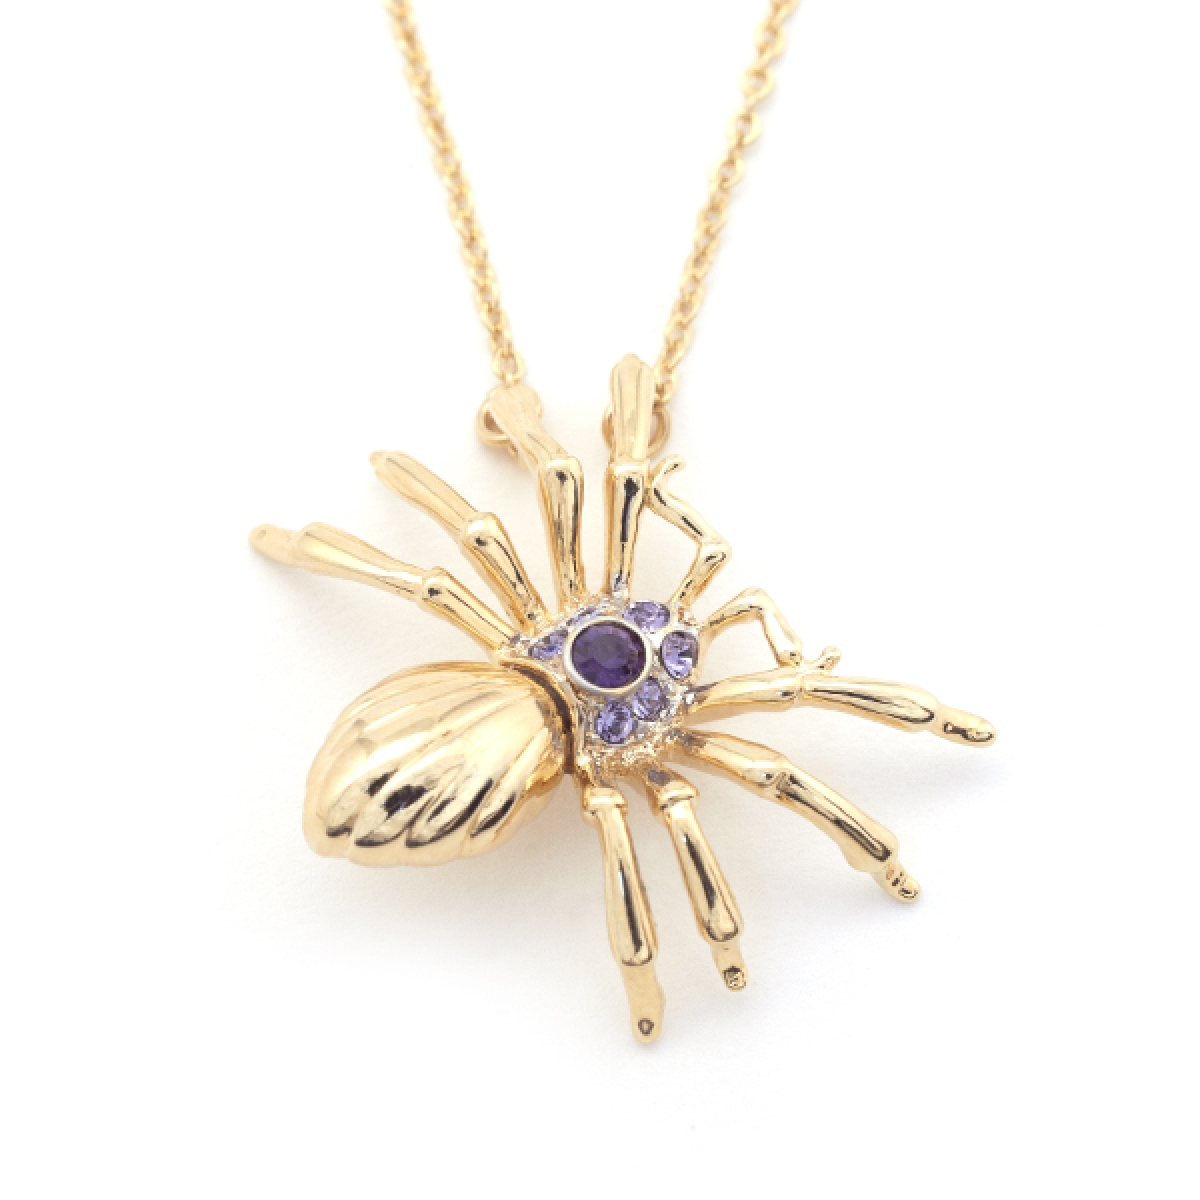 SPIDER SMALL PENDANT